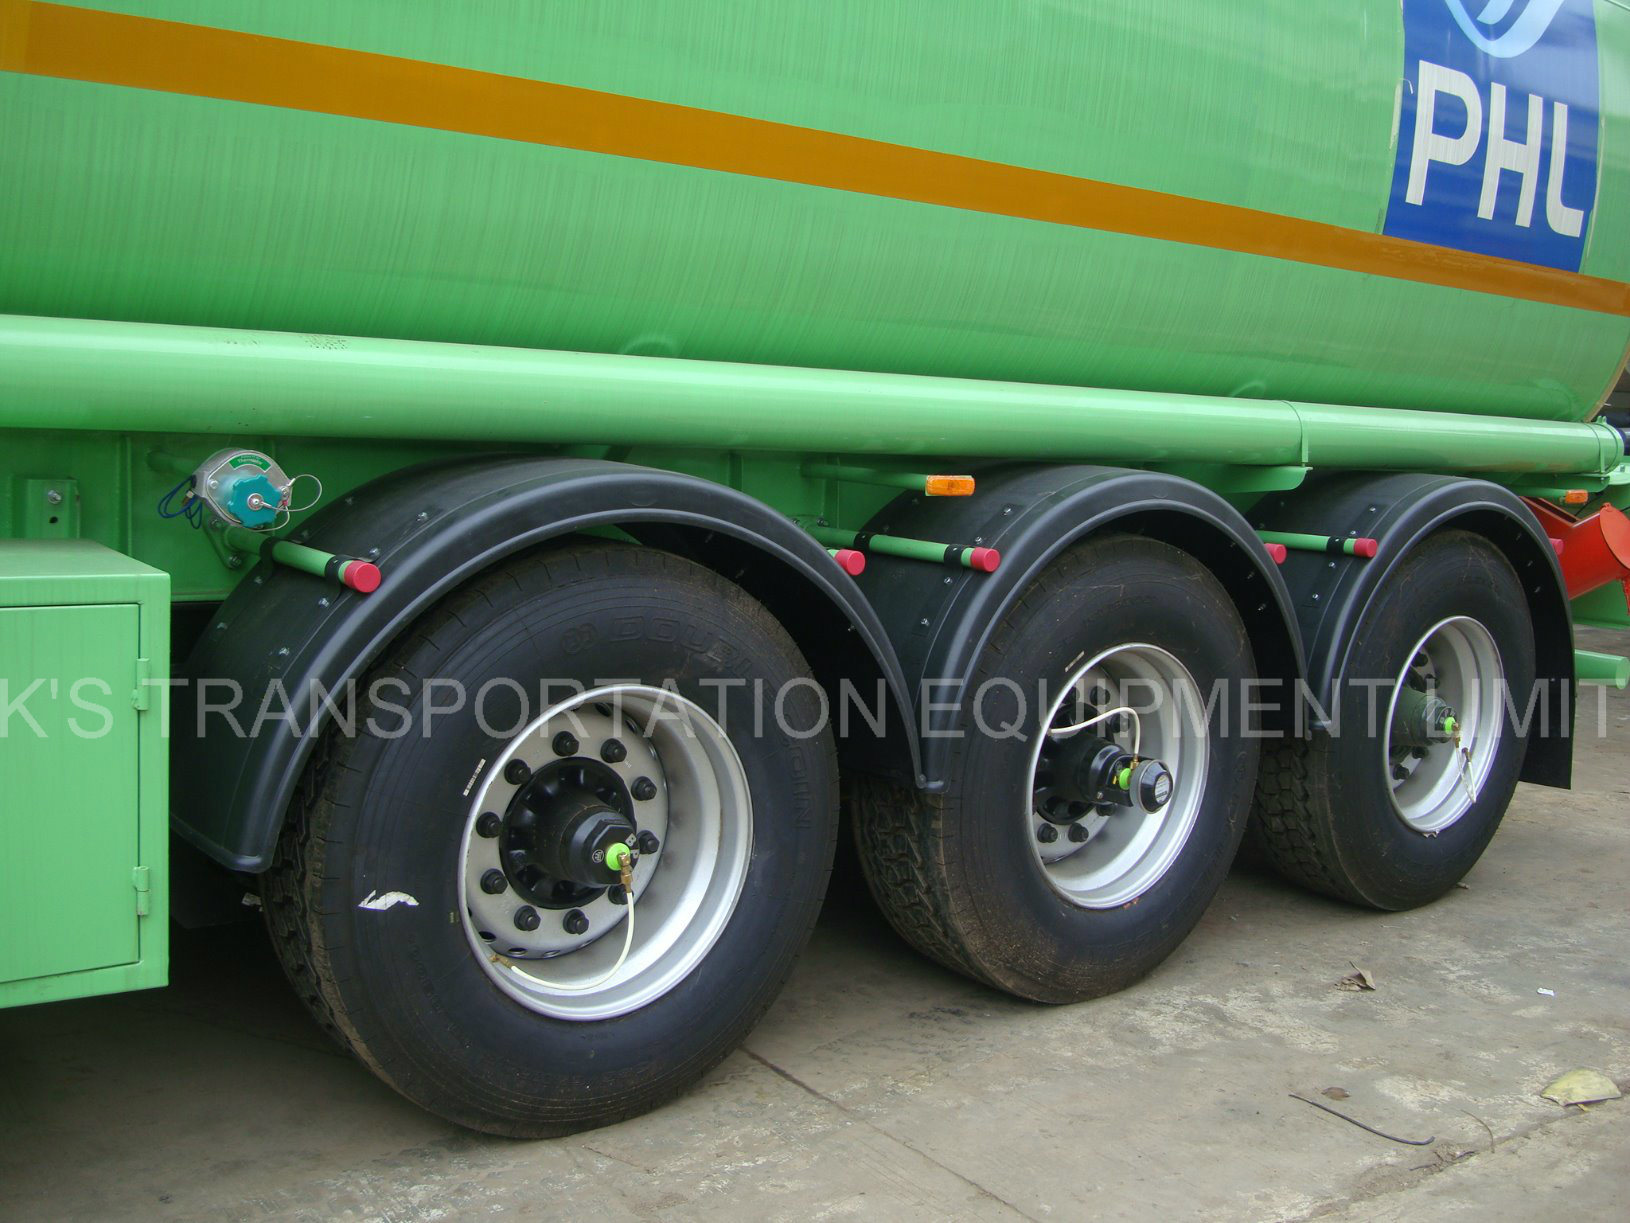 Aluminium Alloy Fuel / Petrol / Gasoline / Oil / LPG Tanker for Storage